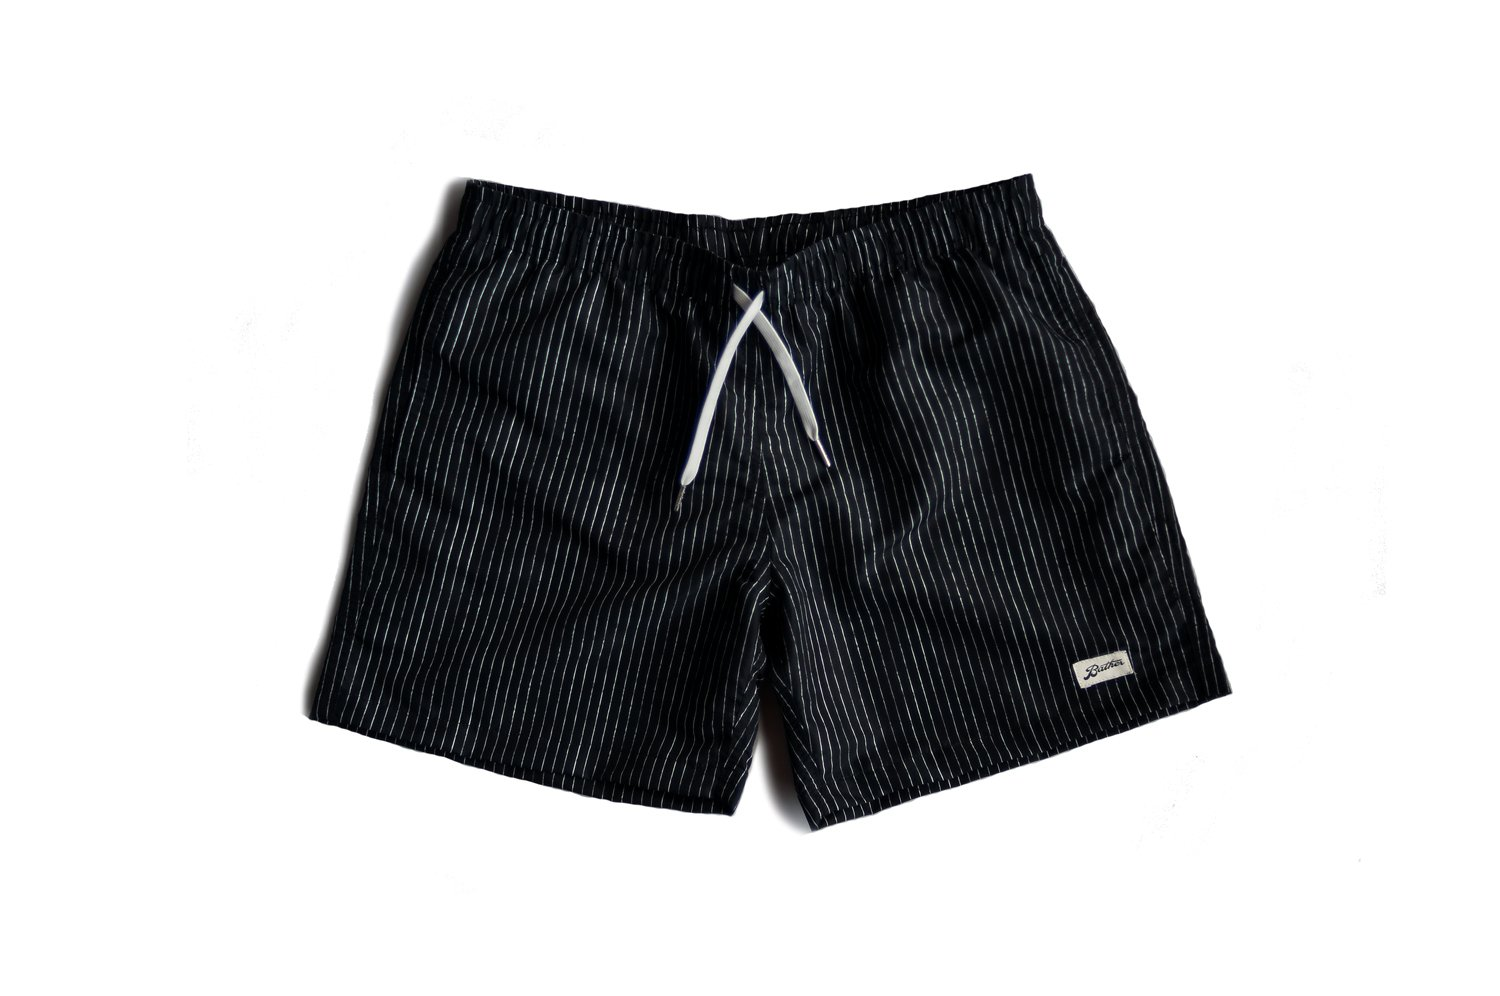 Most guys don't like too much designs on their shorts and trunks so these are perfect. Pool Time!